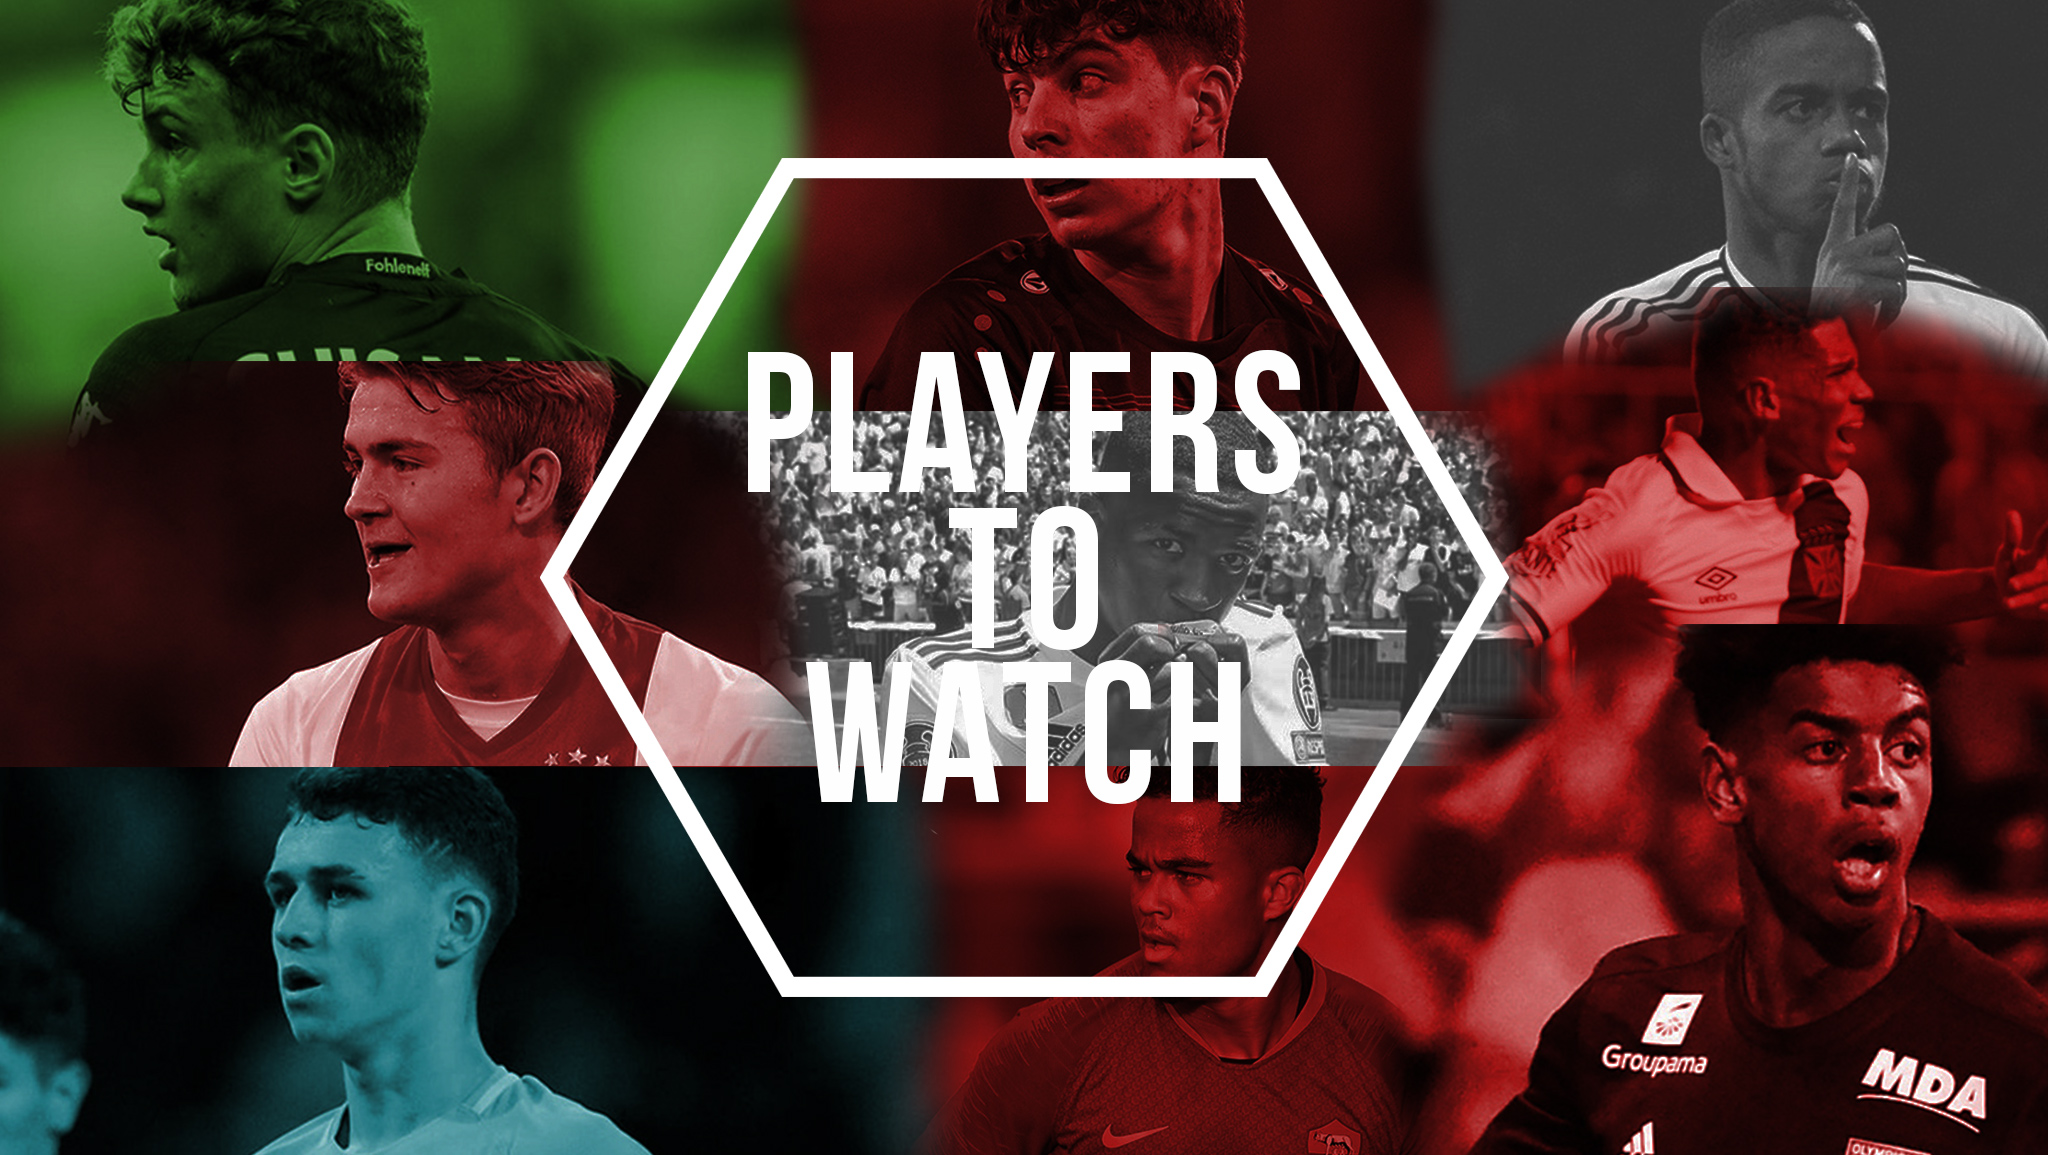 PLAYERS TO WATCH 2018/19